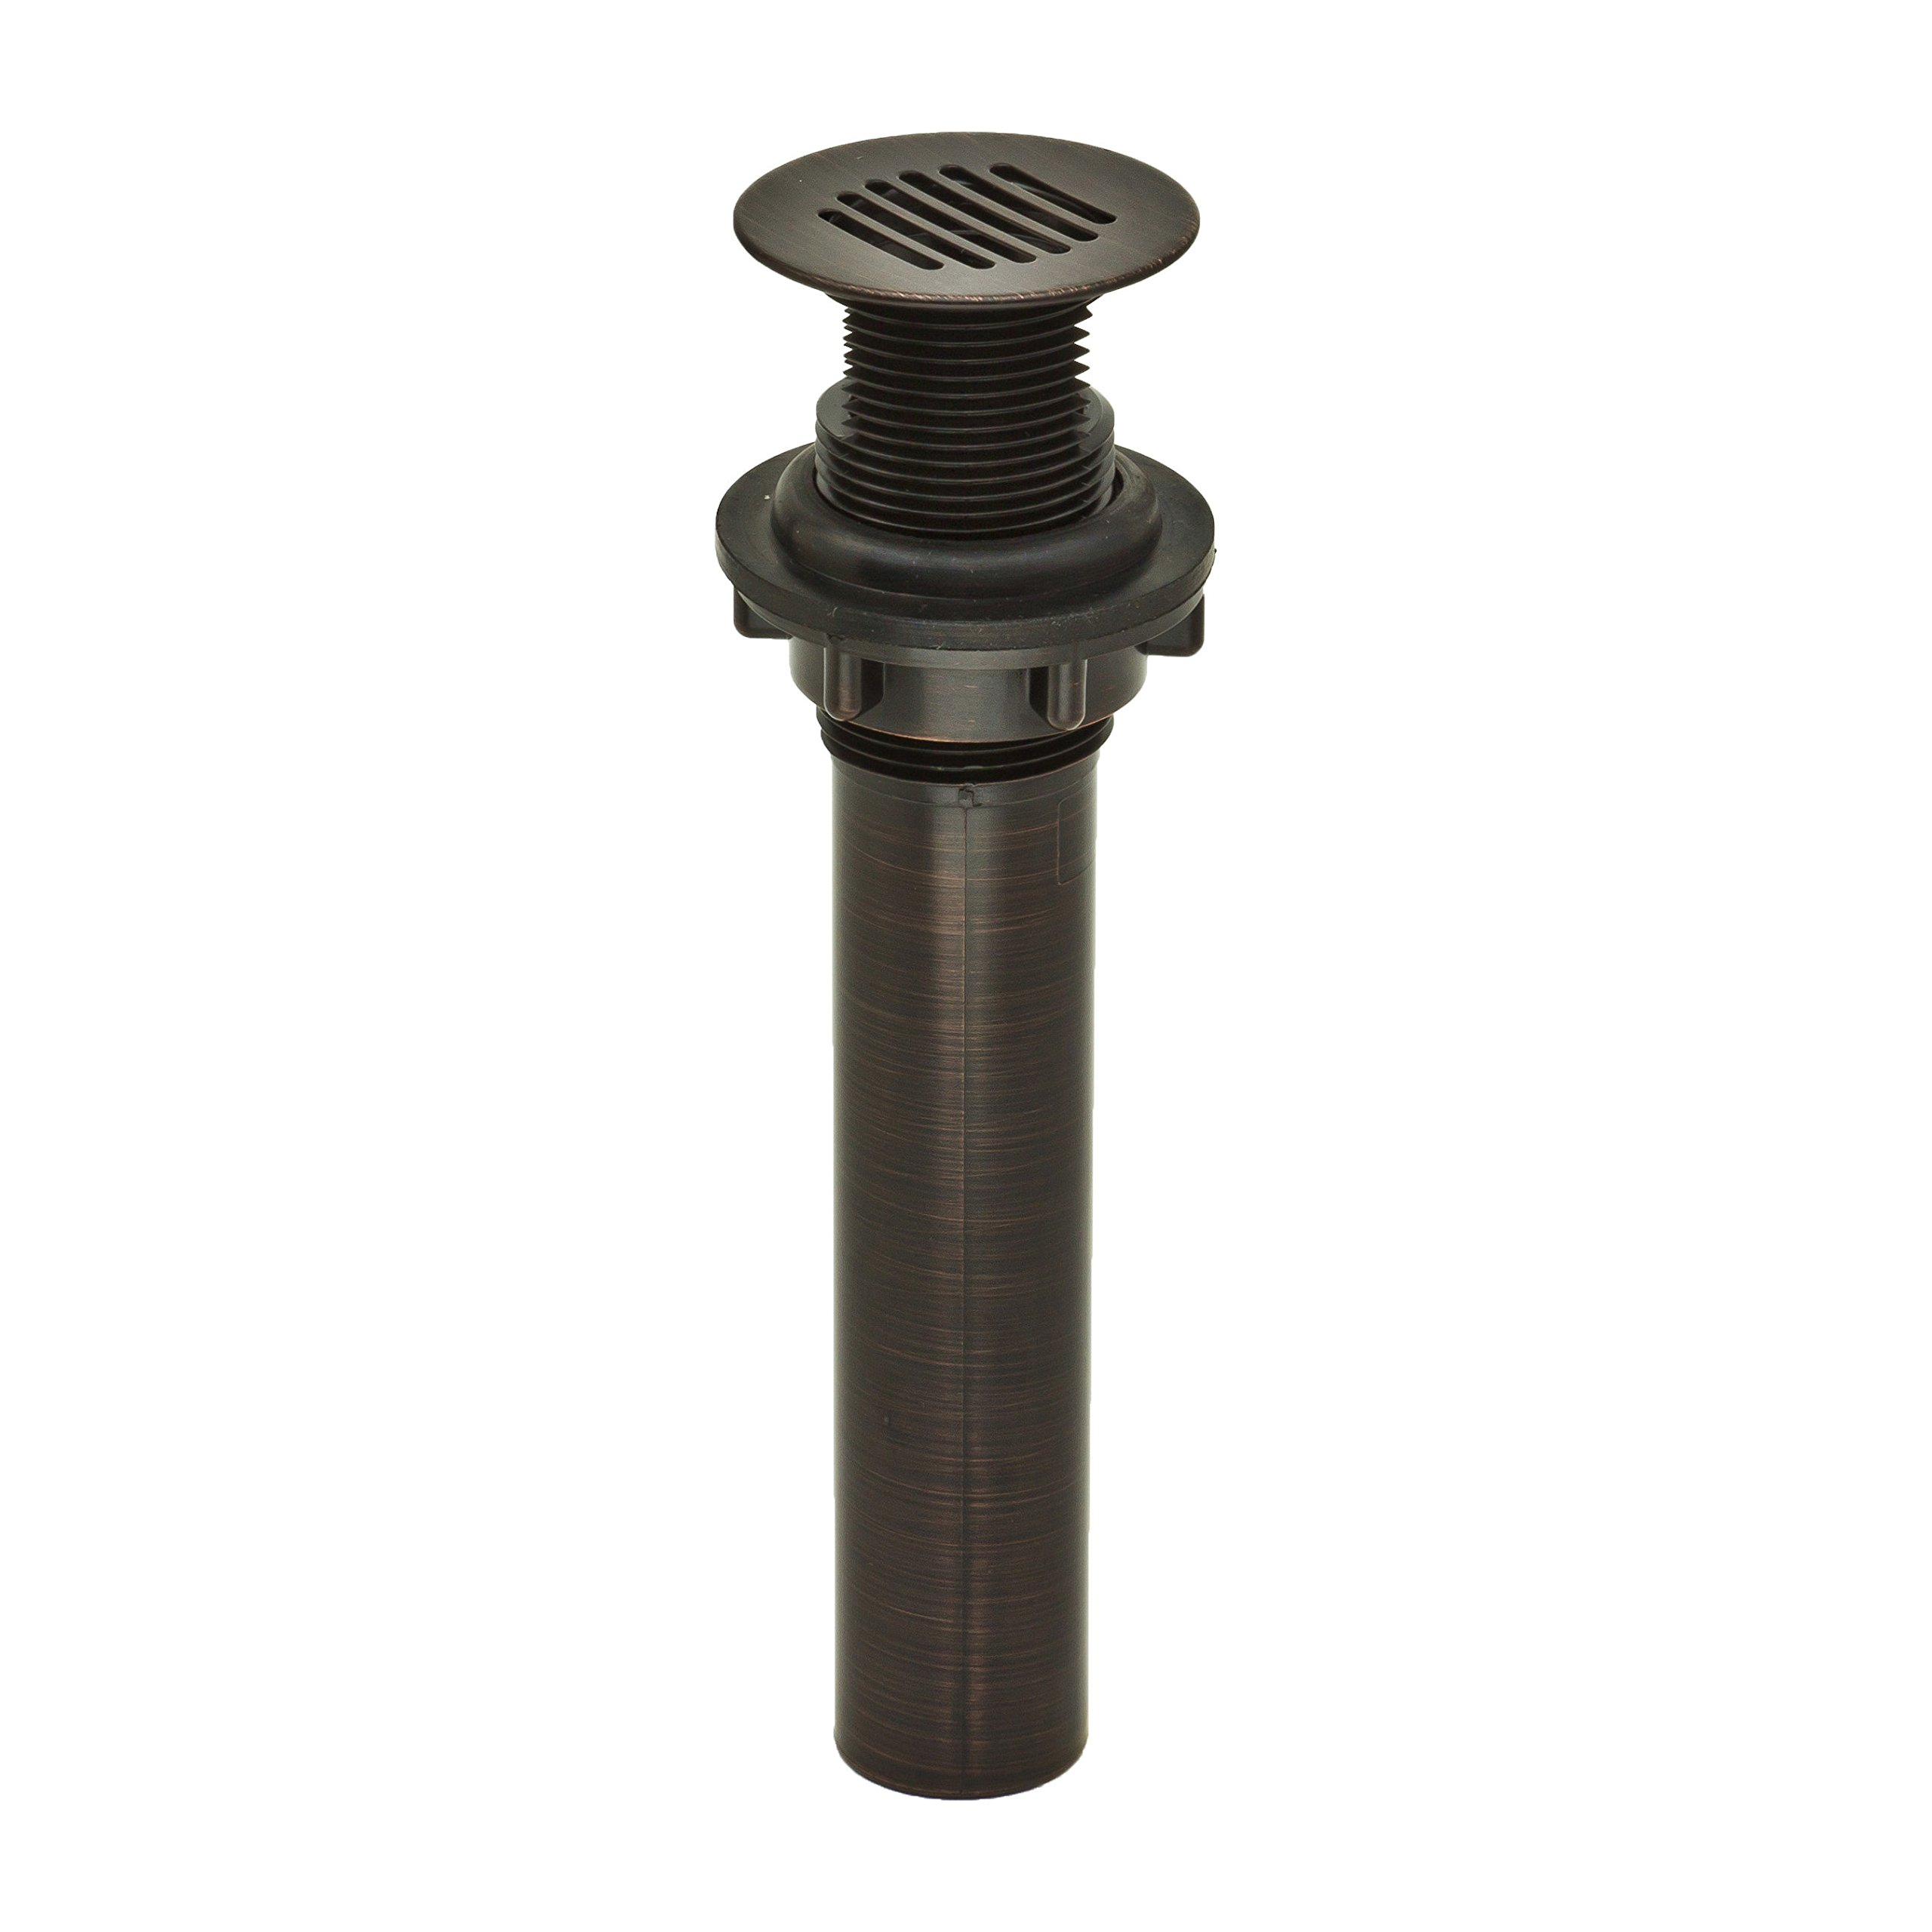 PF WaterWorks DecoDRAIN Grid Strainer Drain for Bathroom Vanity/Lavatory/Vessel/Sink, Plated ABS Body No Overflow; Oil Rubbed Bronze; PF0727-ORB